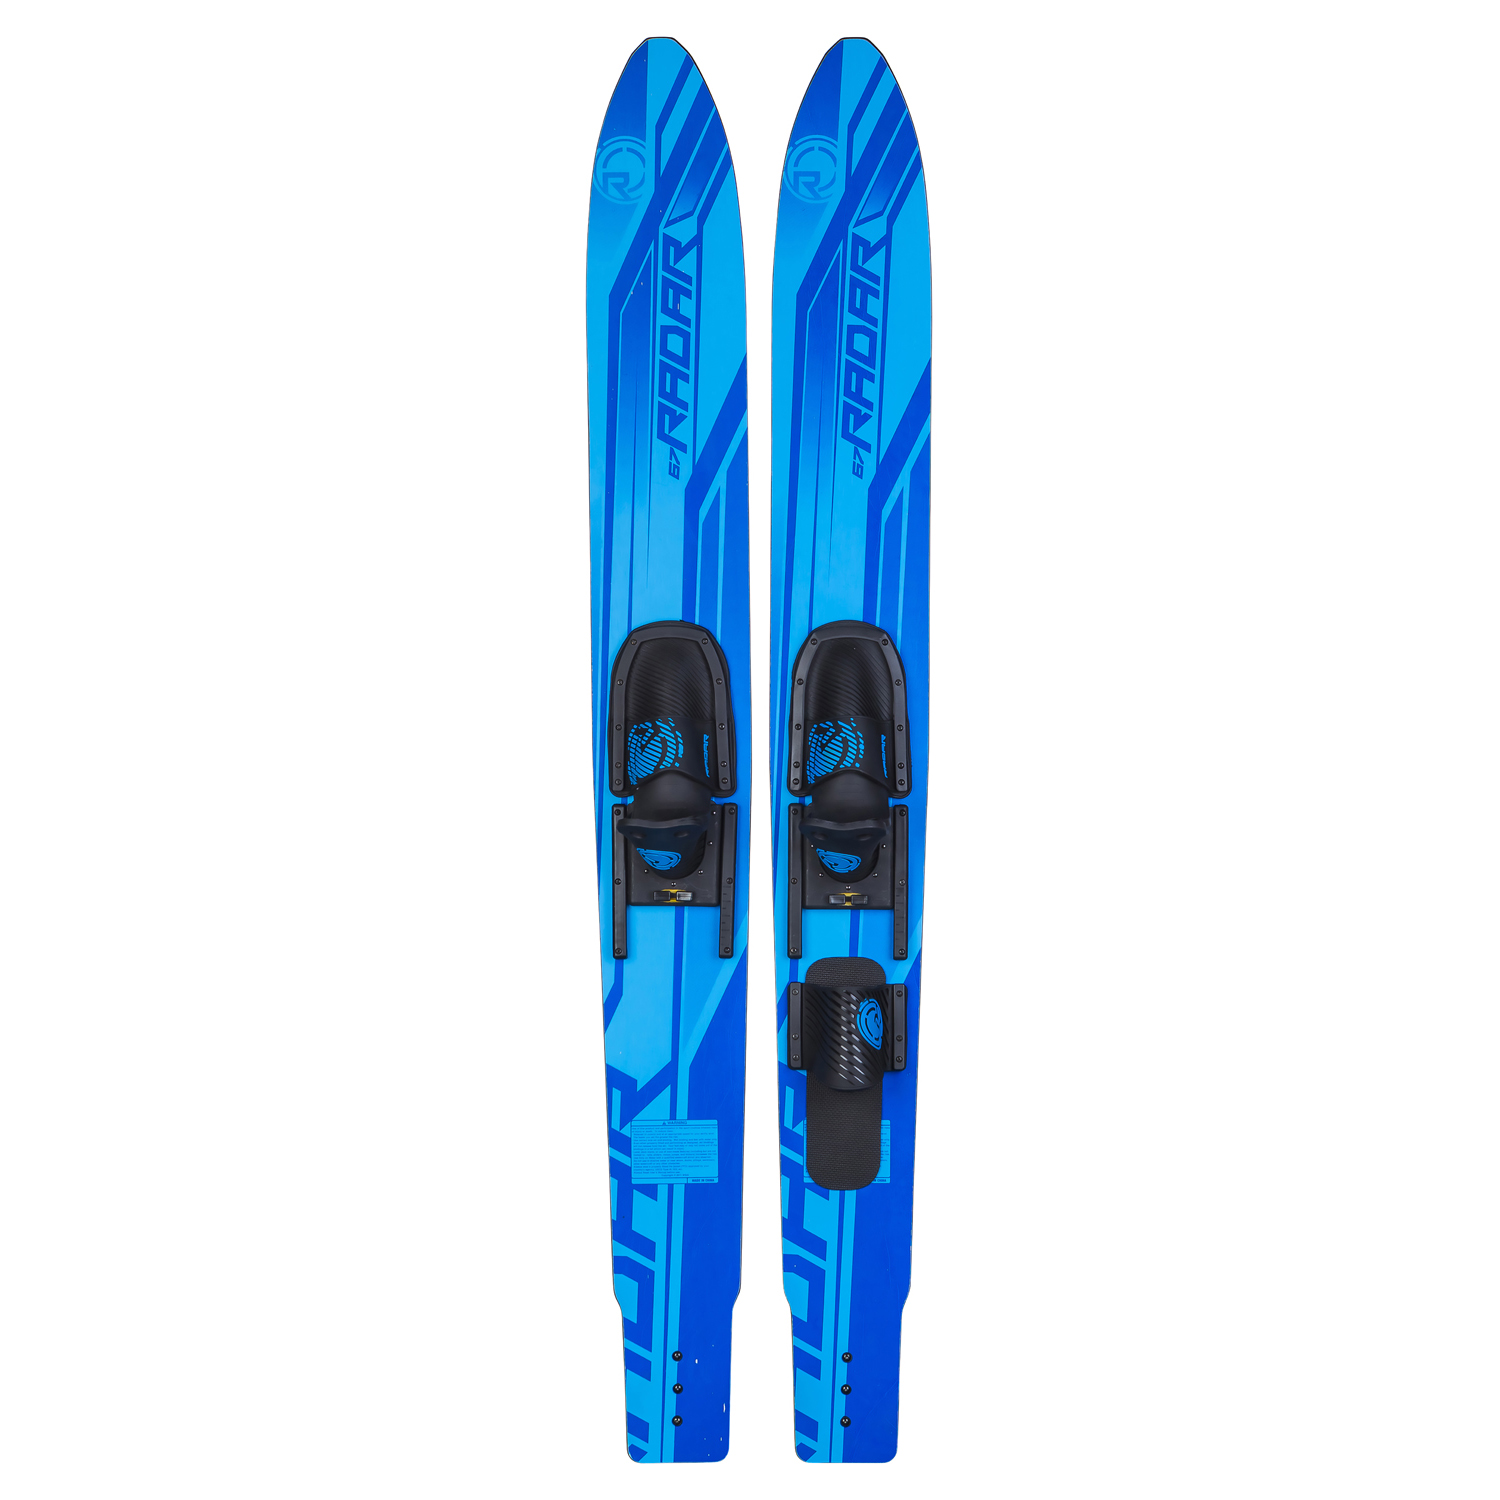 X-CALIBER 67'' COMBO EVA ADJ. X-CALIBER BINDINGS - BLUE RADAR 2016